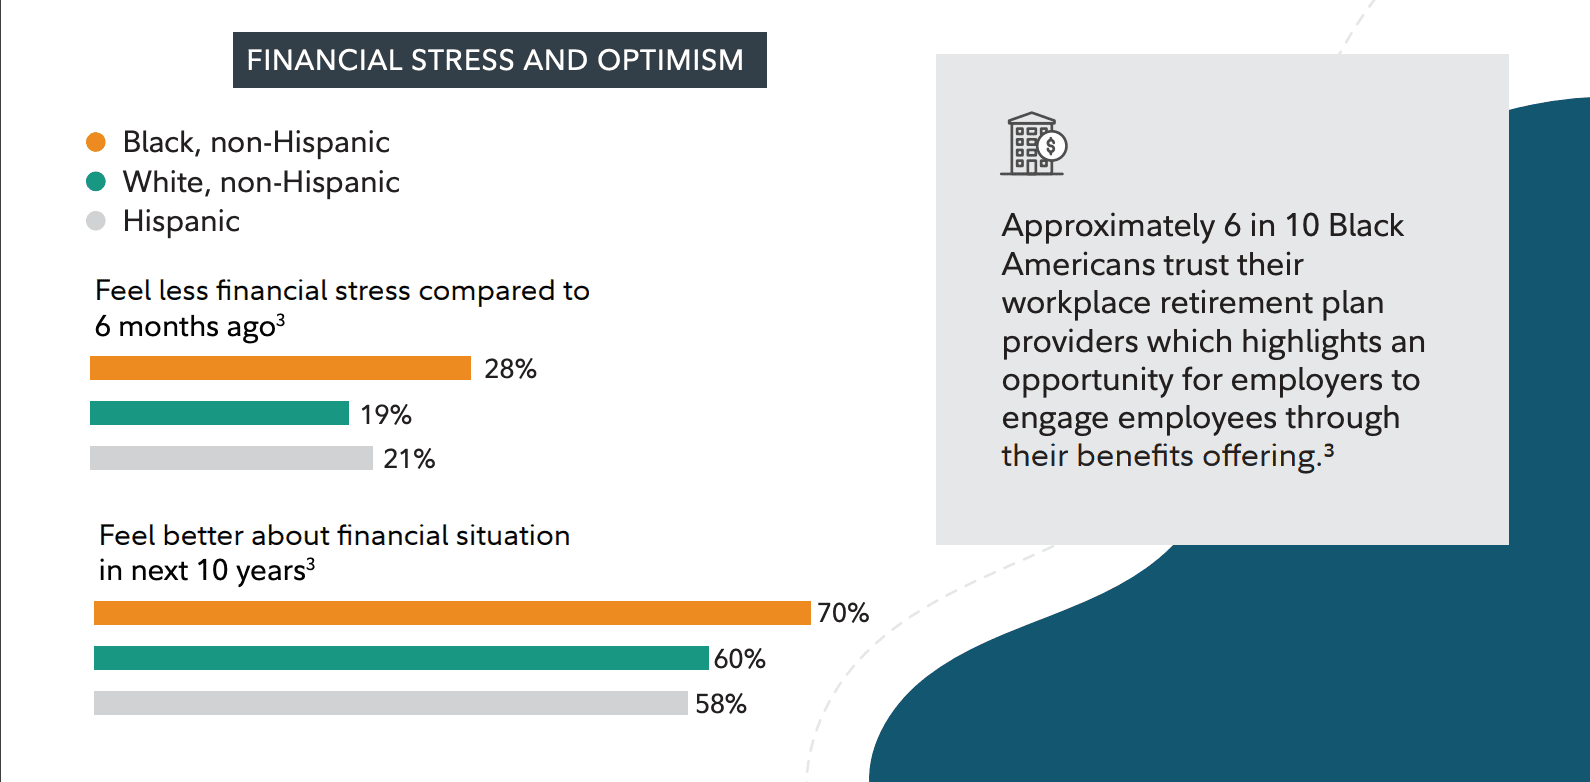 Financial stress and optimism